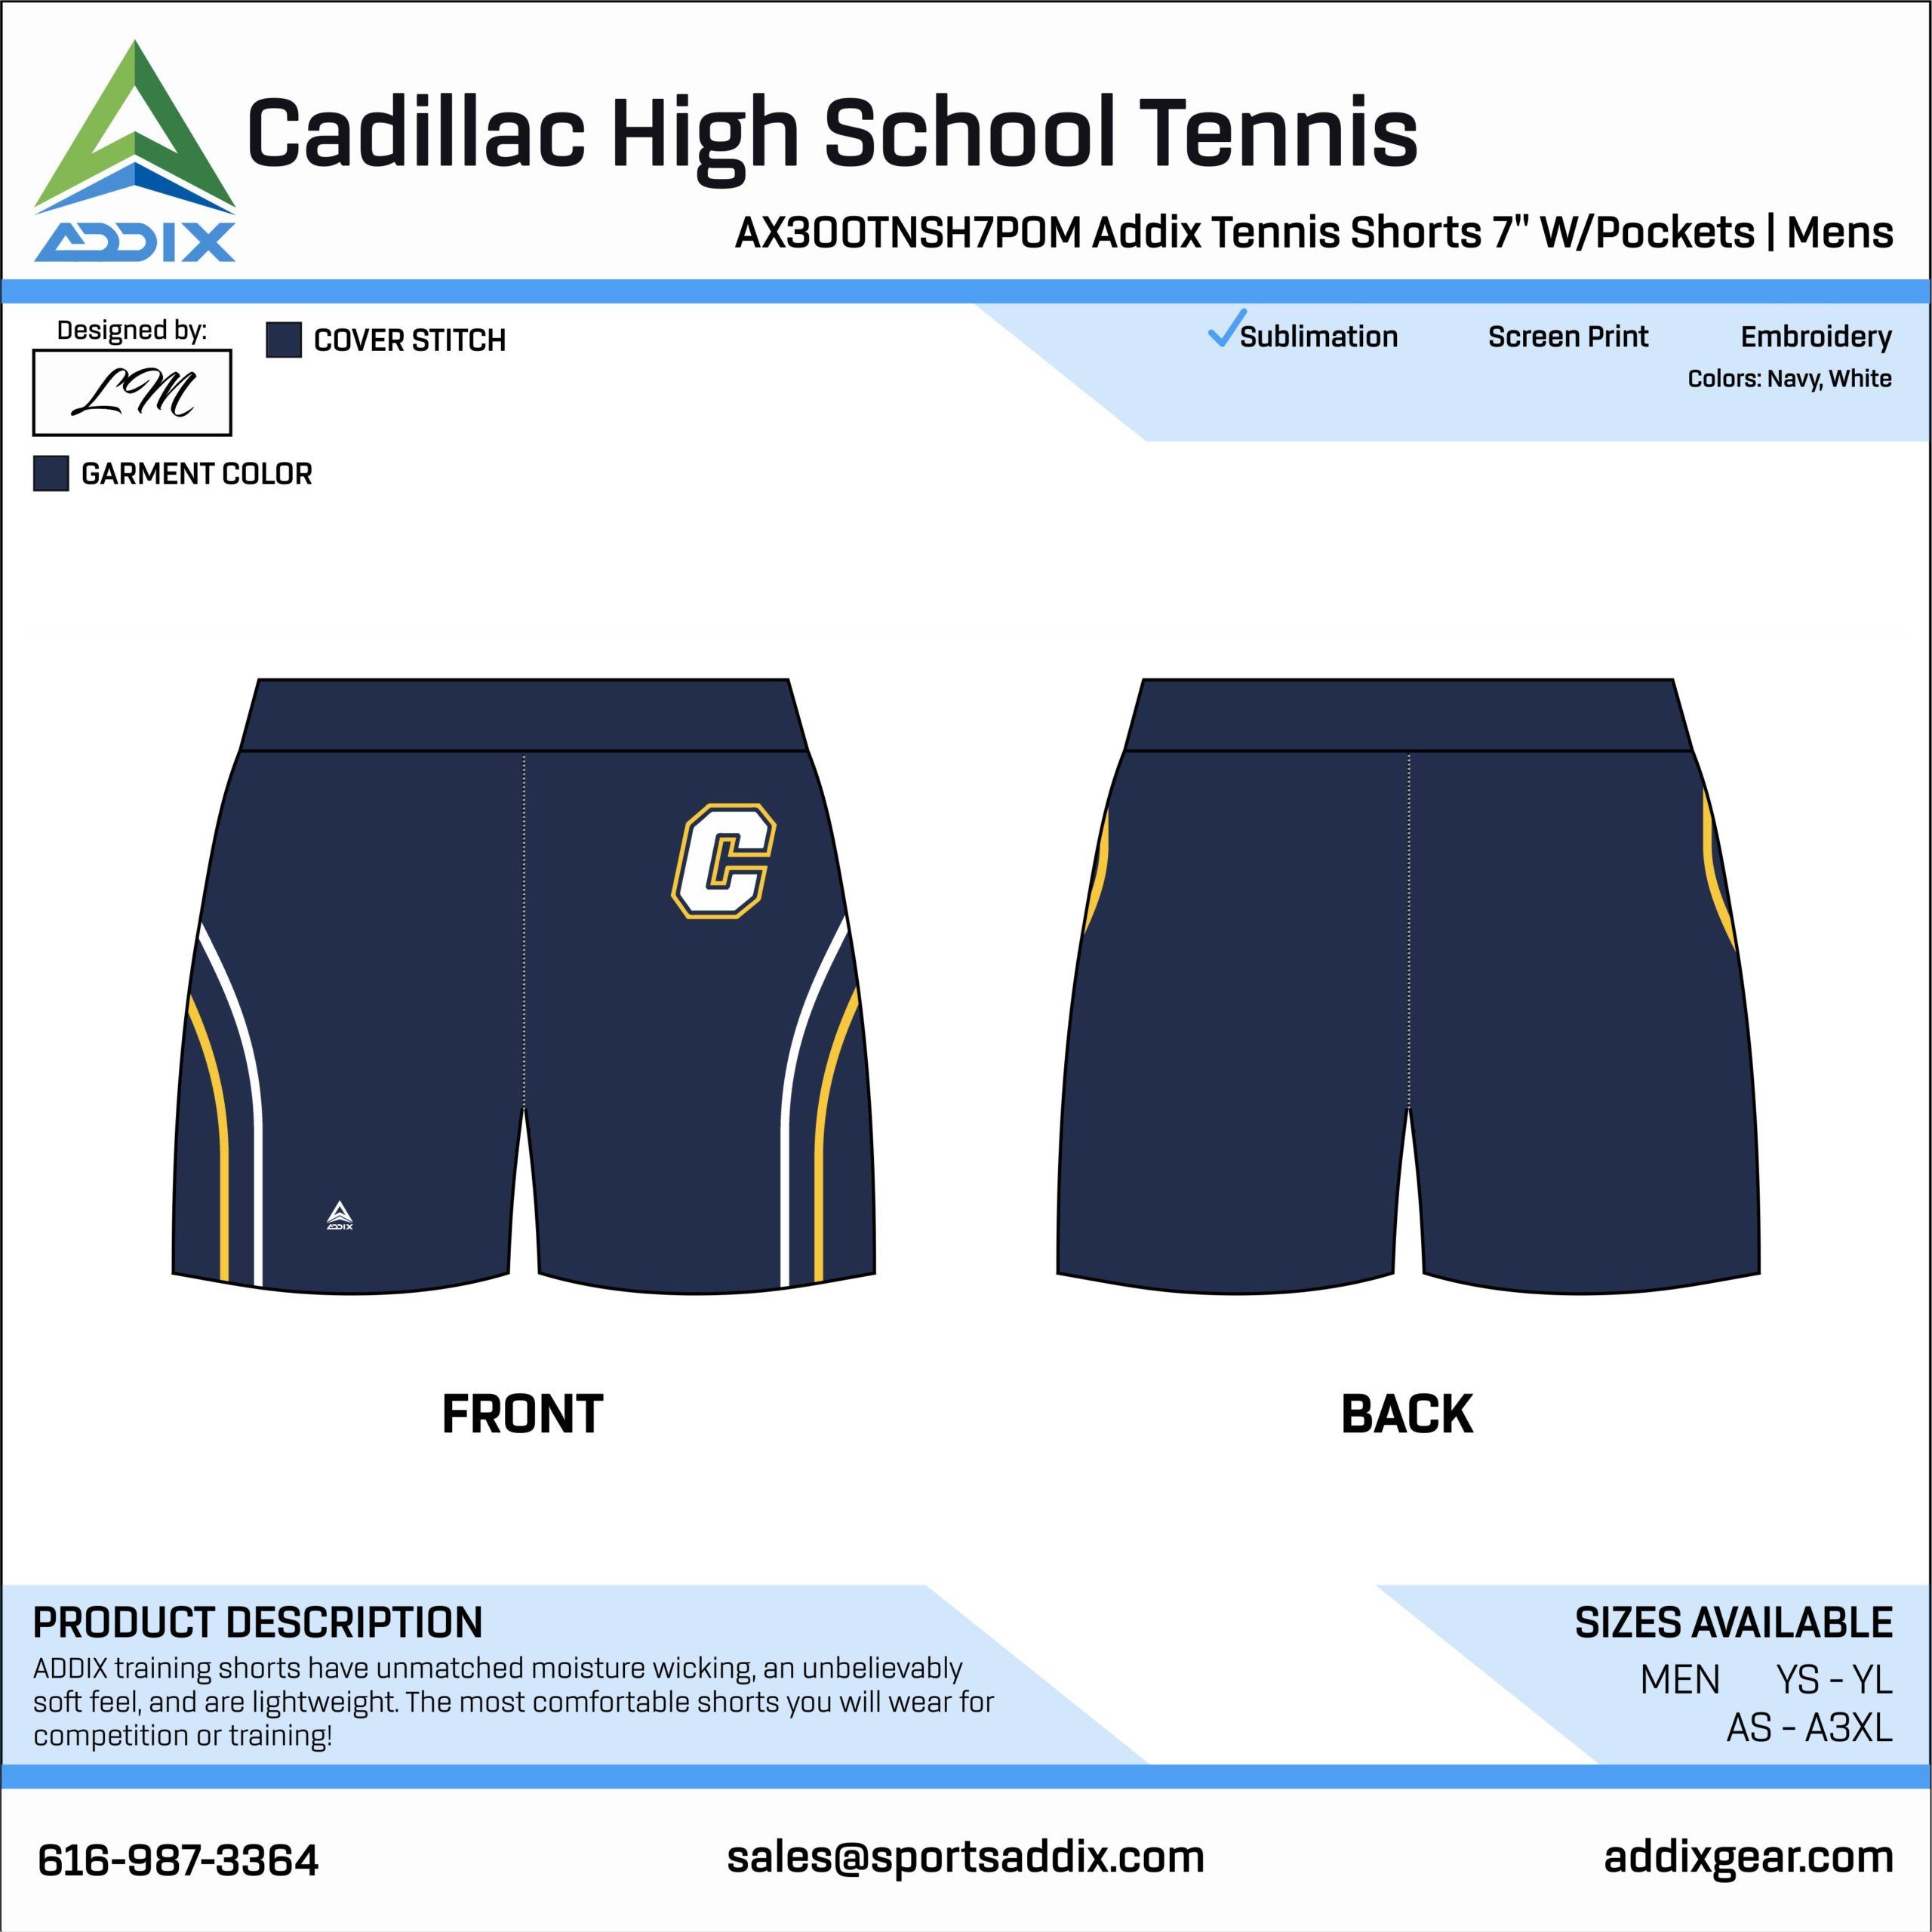 Cadillac High School Tennis Shorts